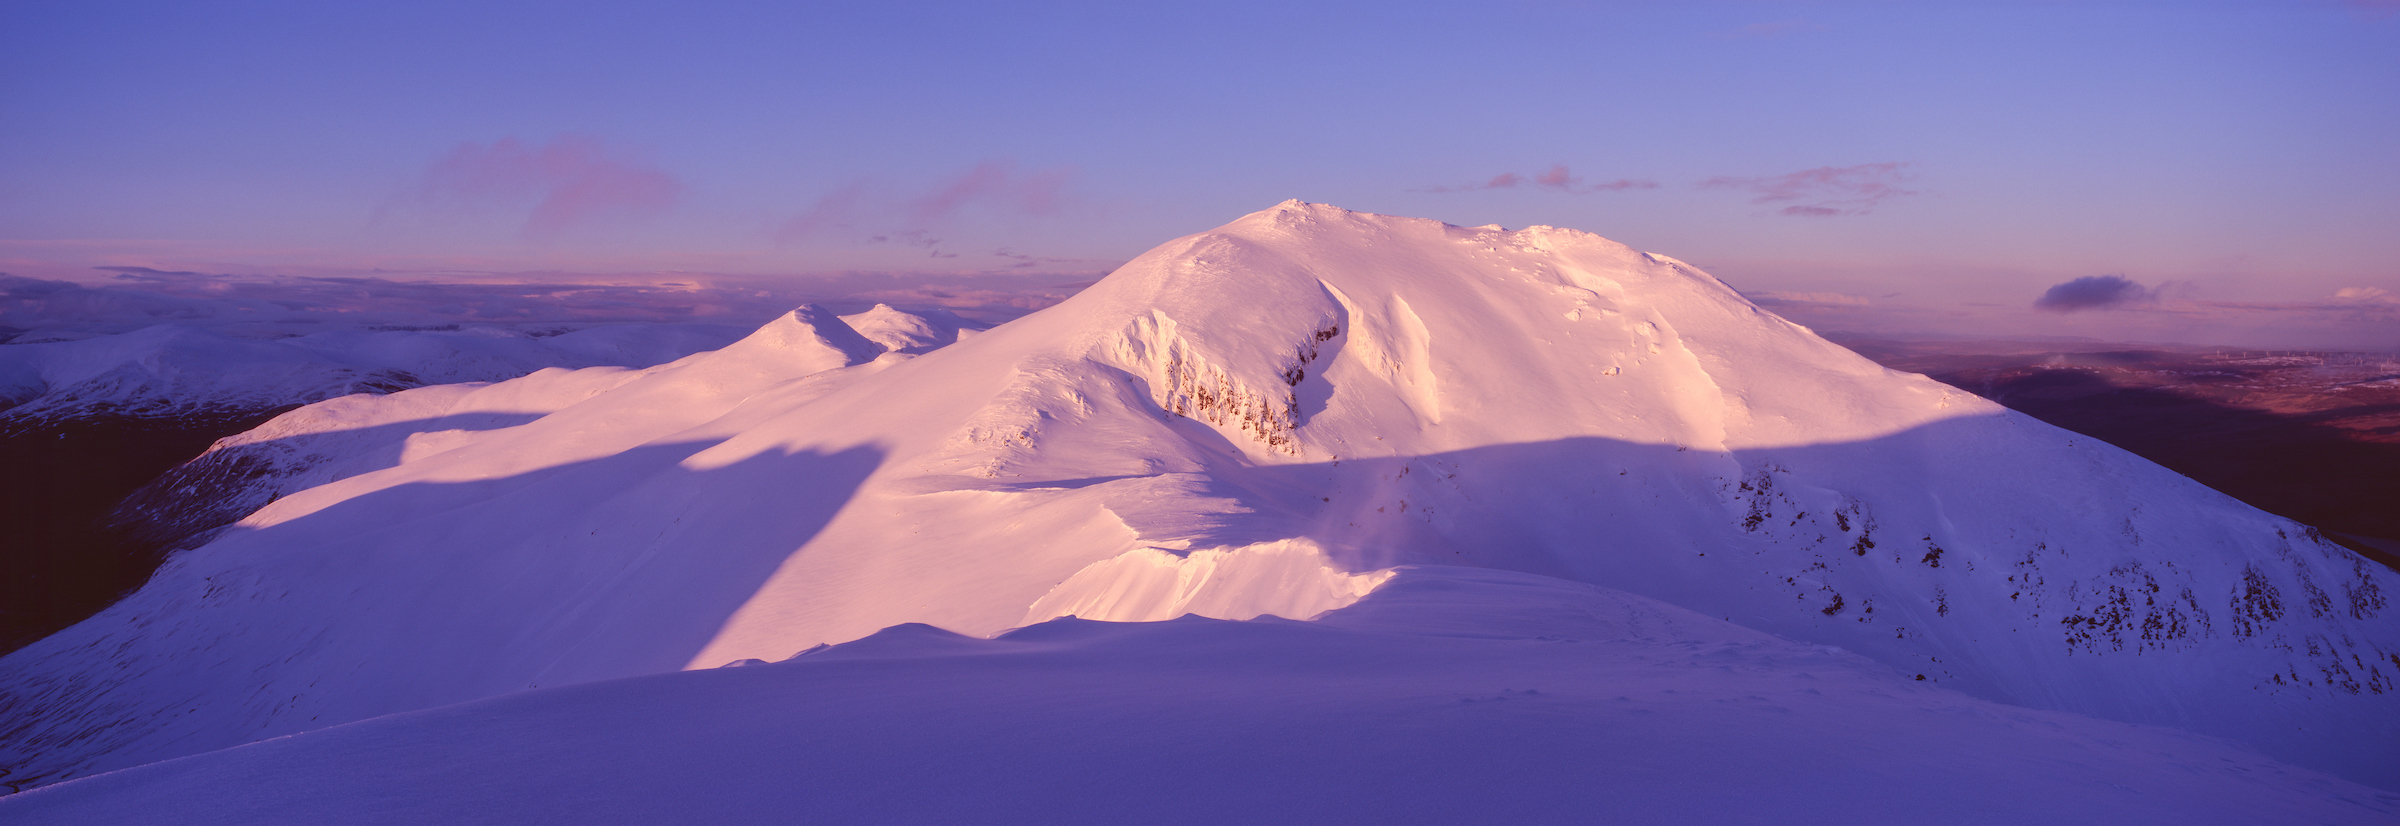 highland panormas - the Scottish Highlands from a Panoramic Perspective..